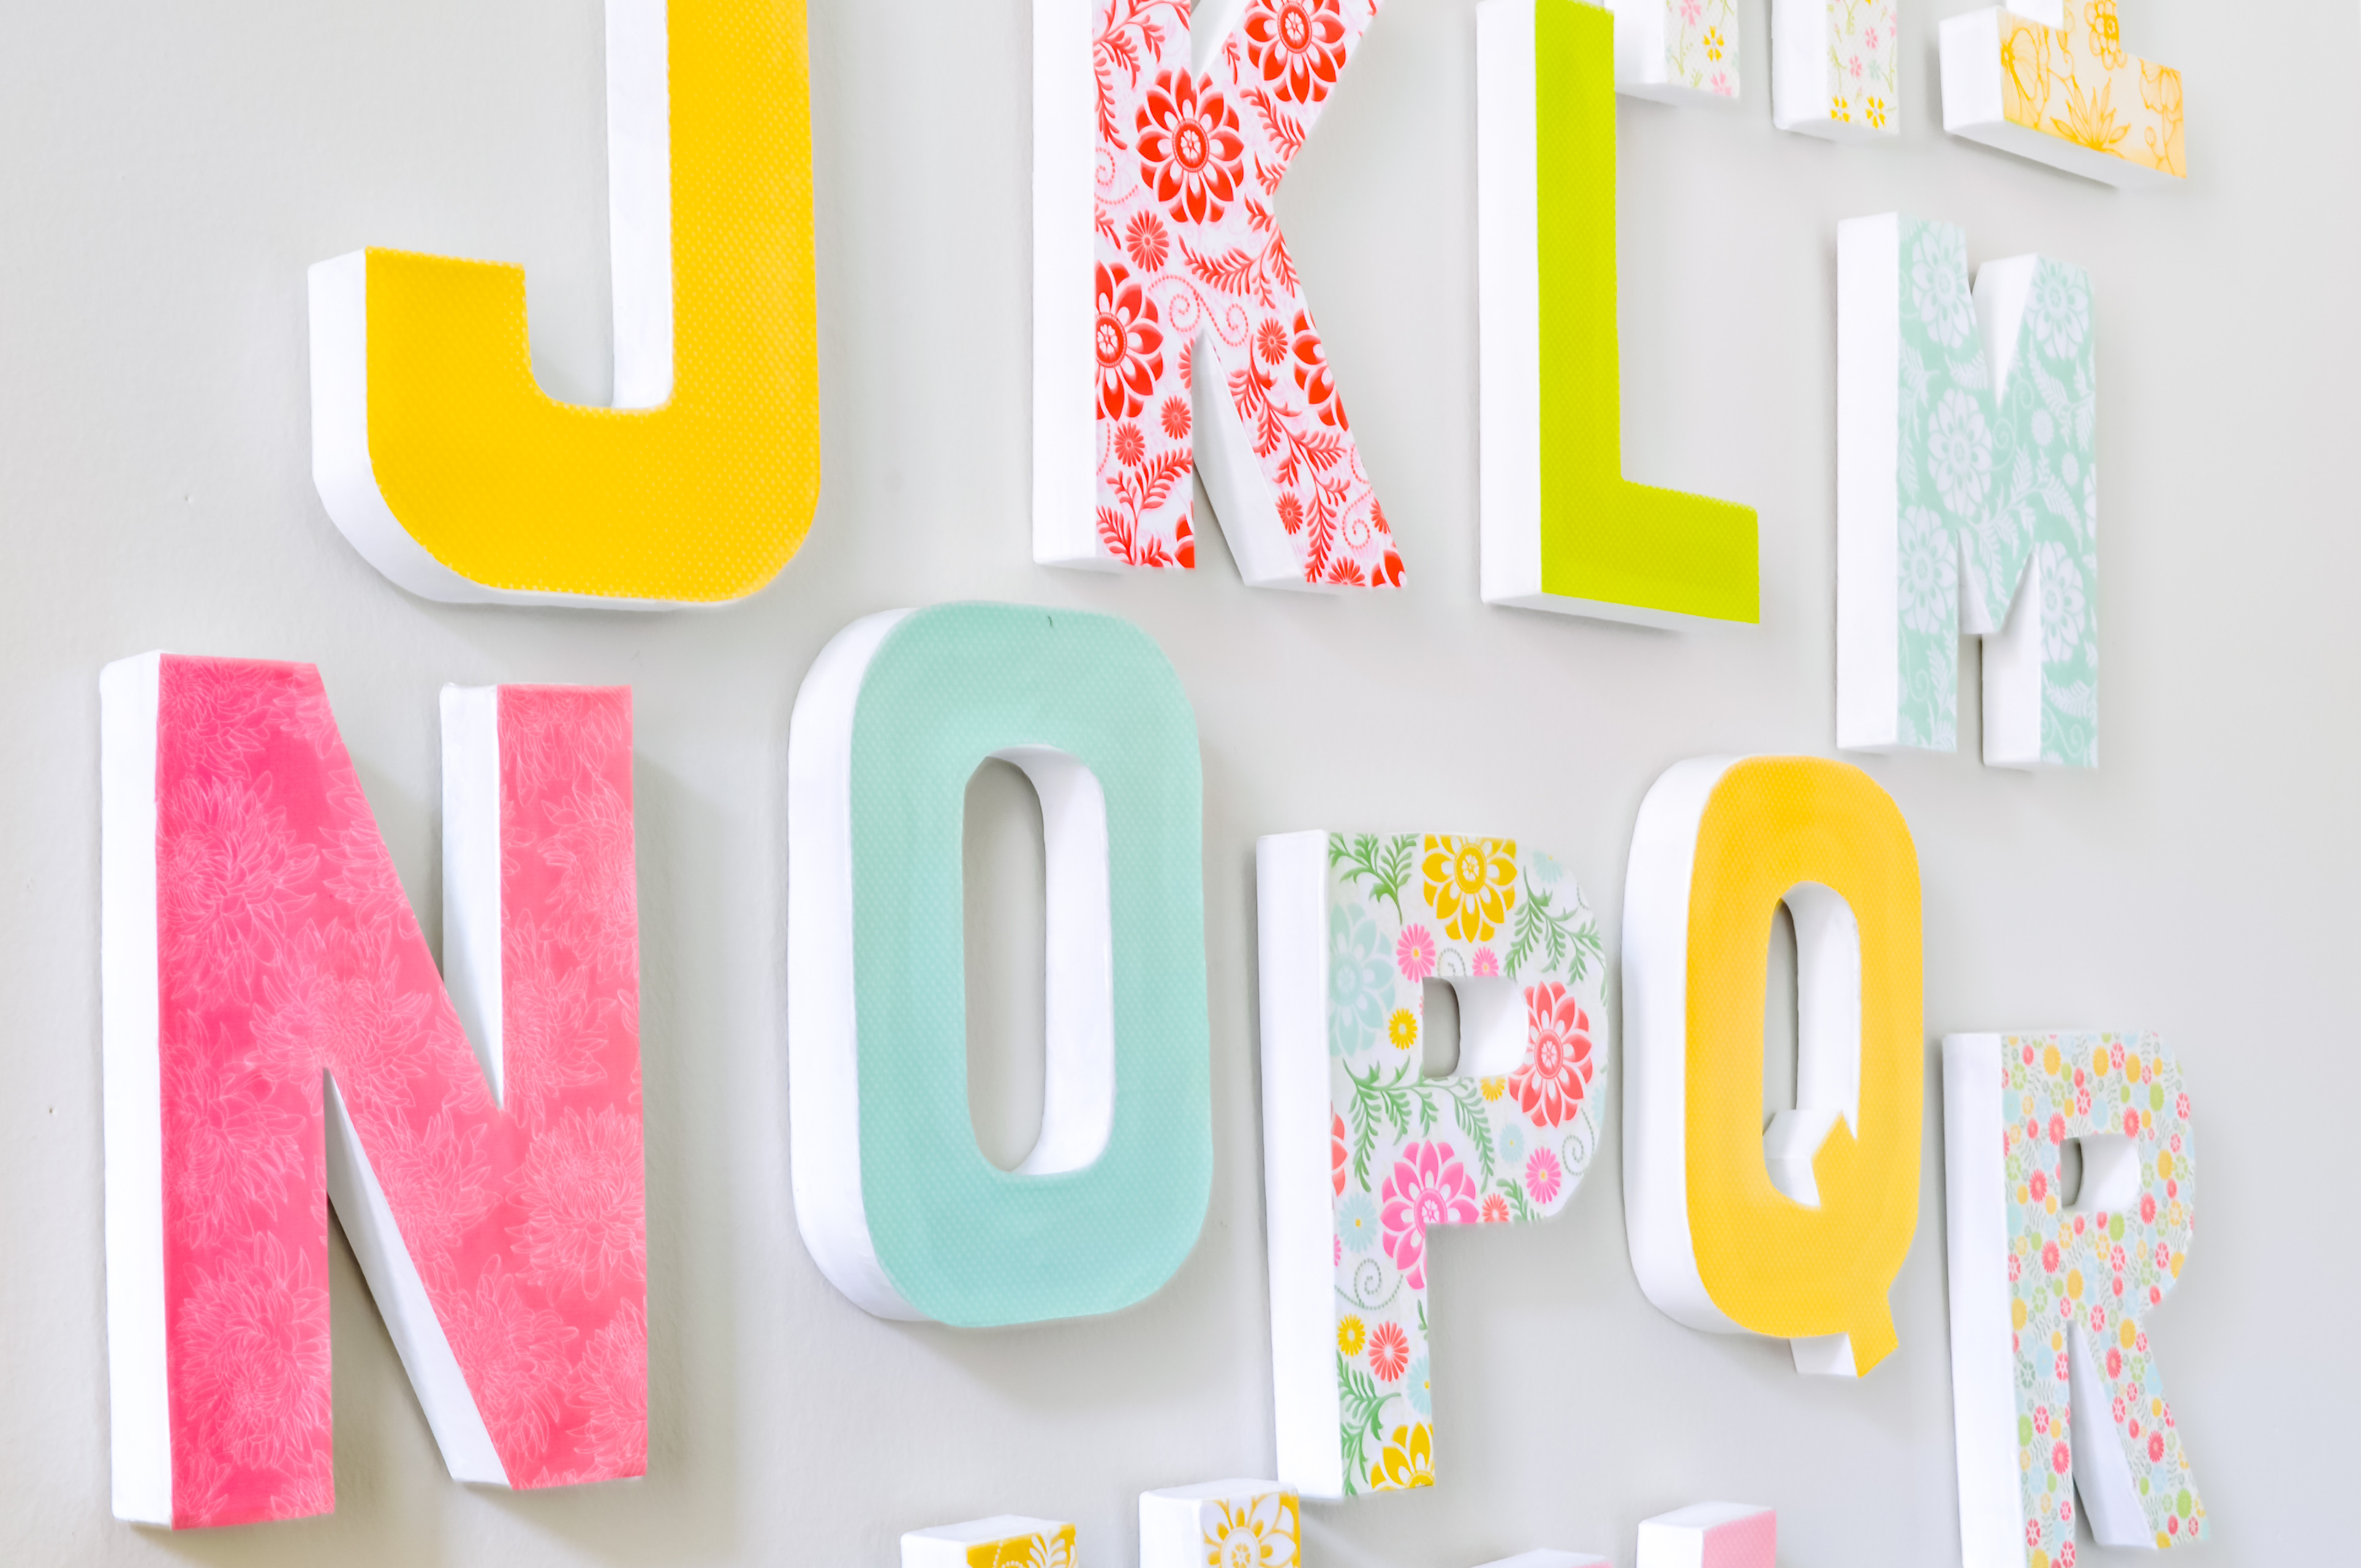 Best ideas about DIY Wall Letters . Save or Pin DIY LETTER WALL DECOR THE LOVE NERDS Now.